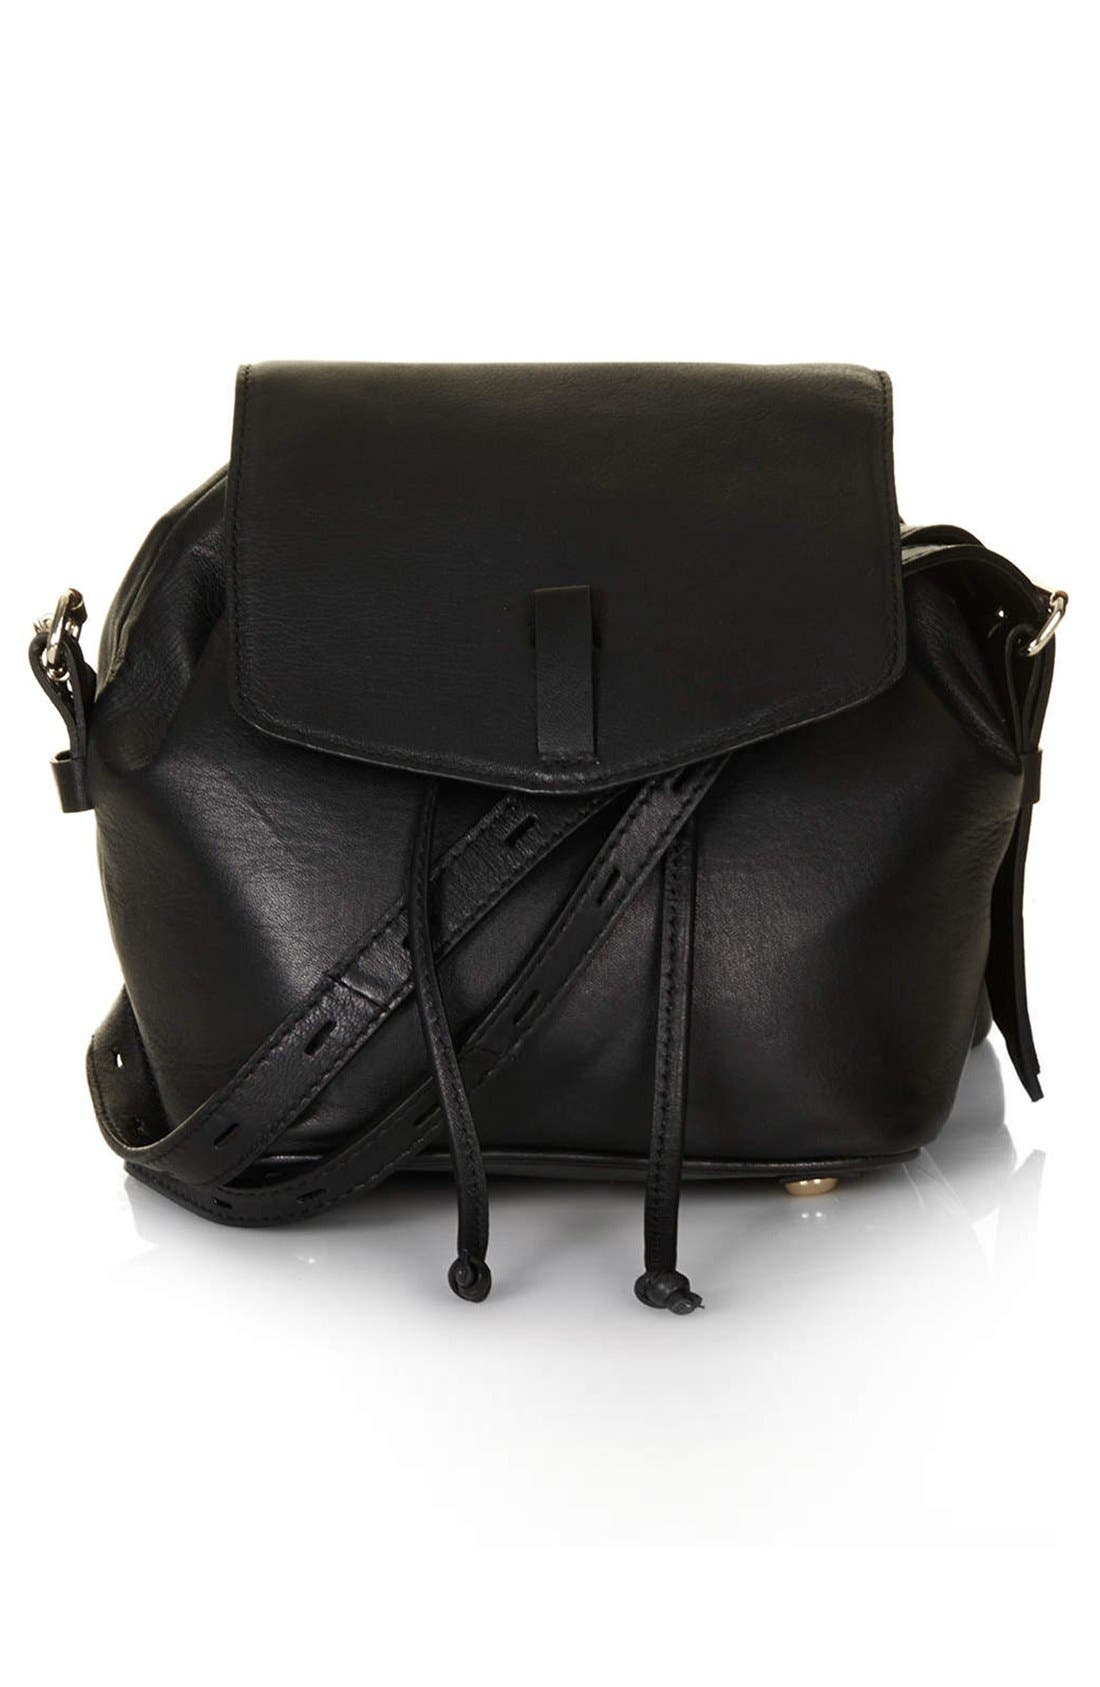 Main Image - Topshop Leather Convertible Crossbody Bag